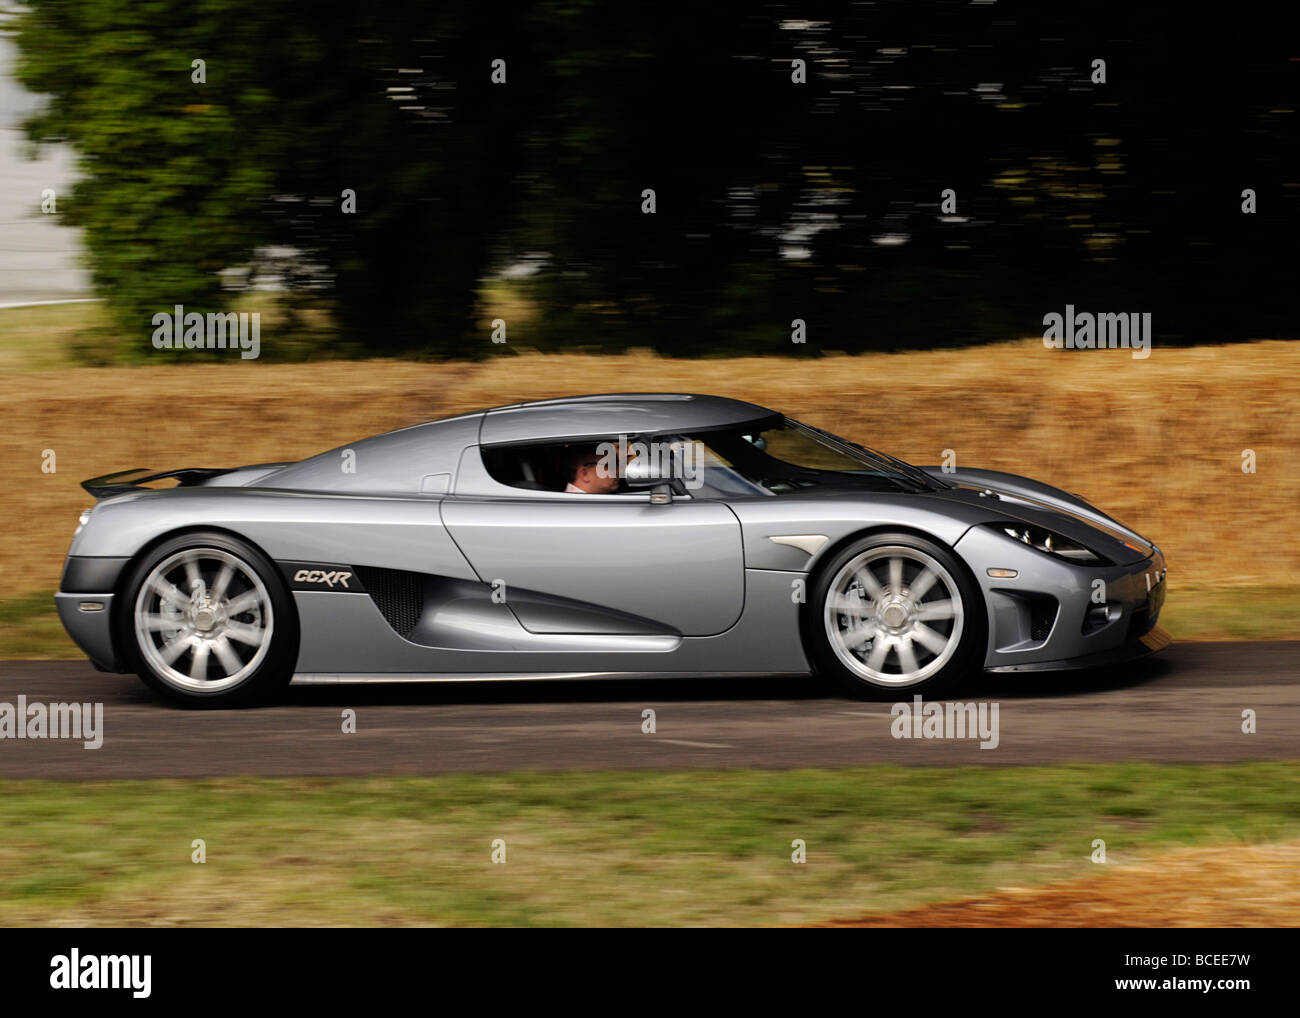 Koenigsegg CCXR At 2009 Goodwood Festival Of Speed   Stock Image